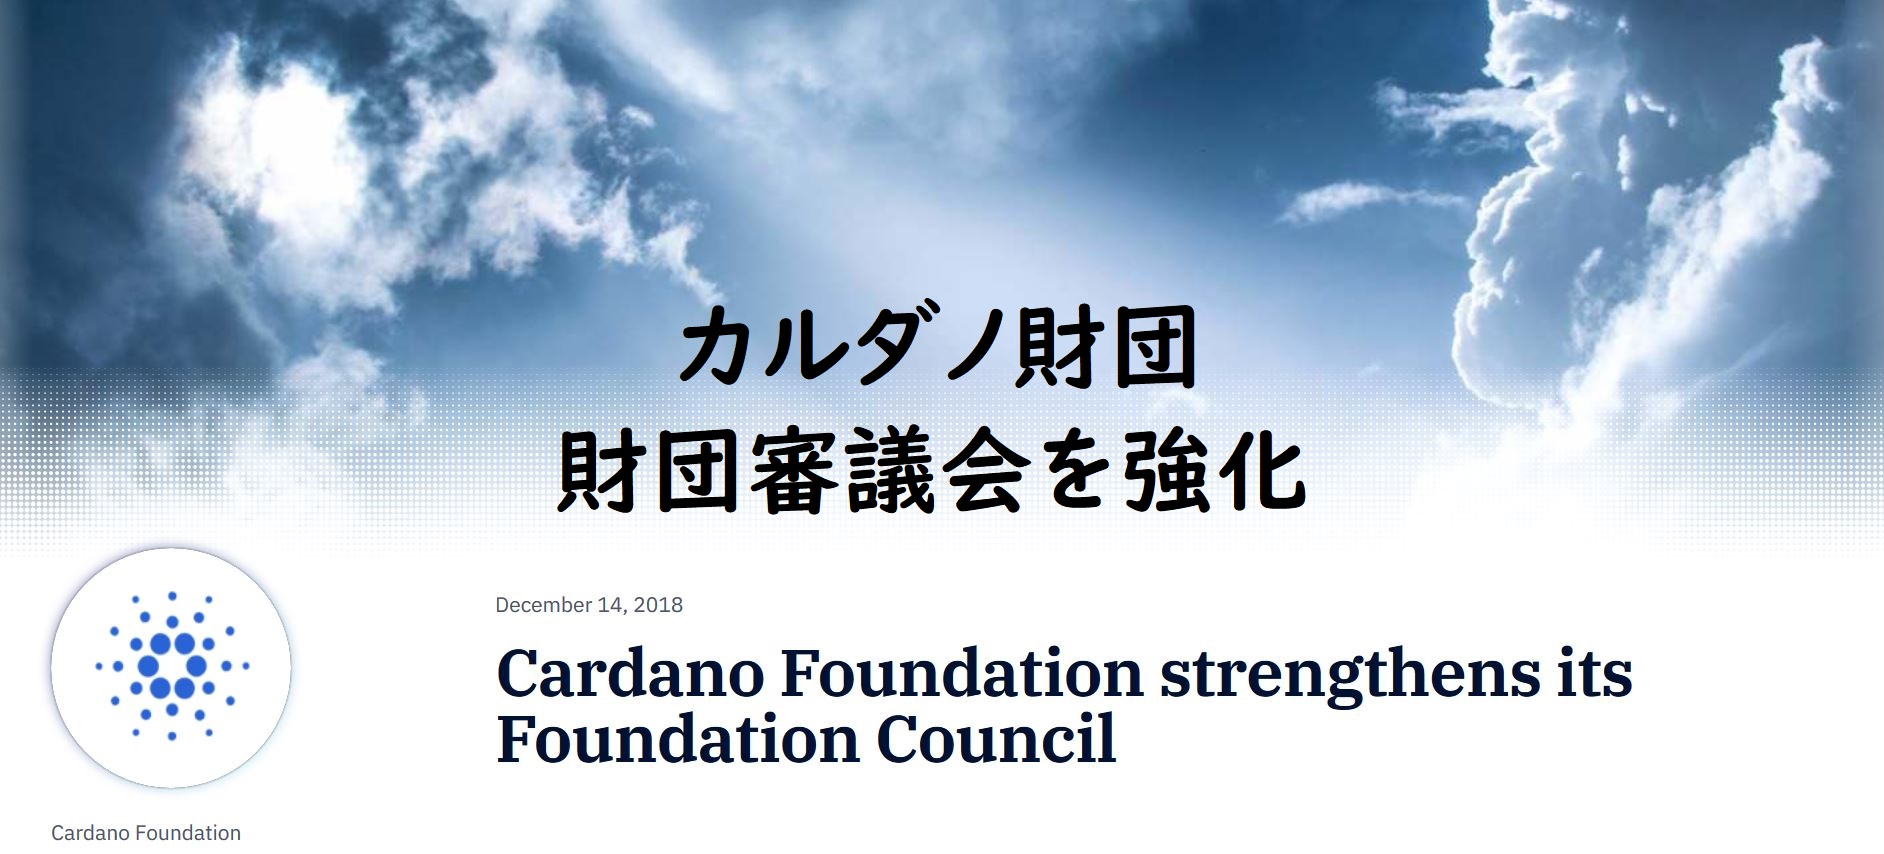 Cardano Foundation strengthens its Foundation Council